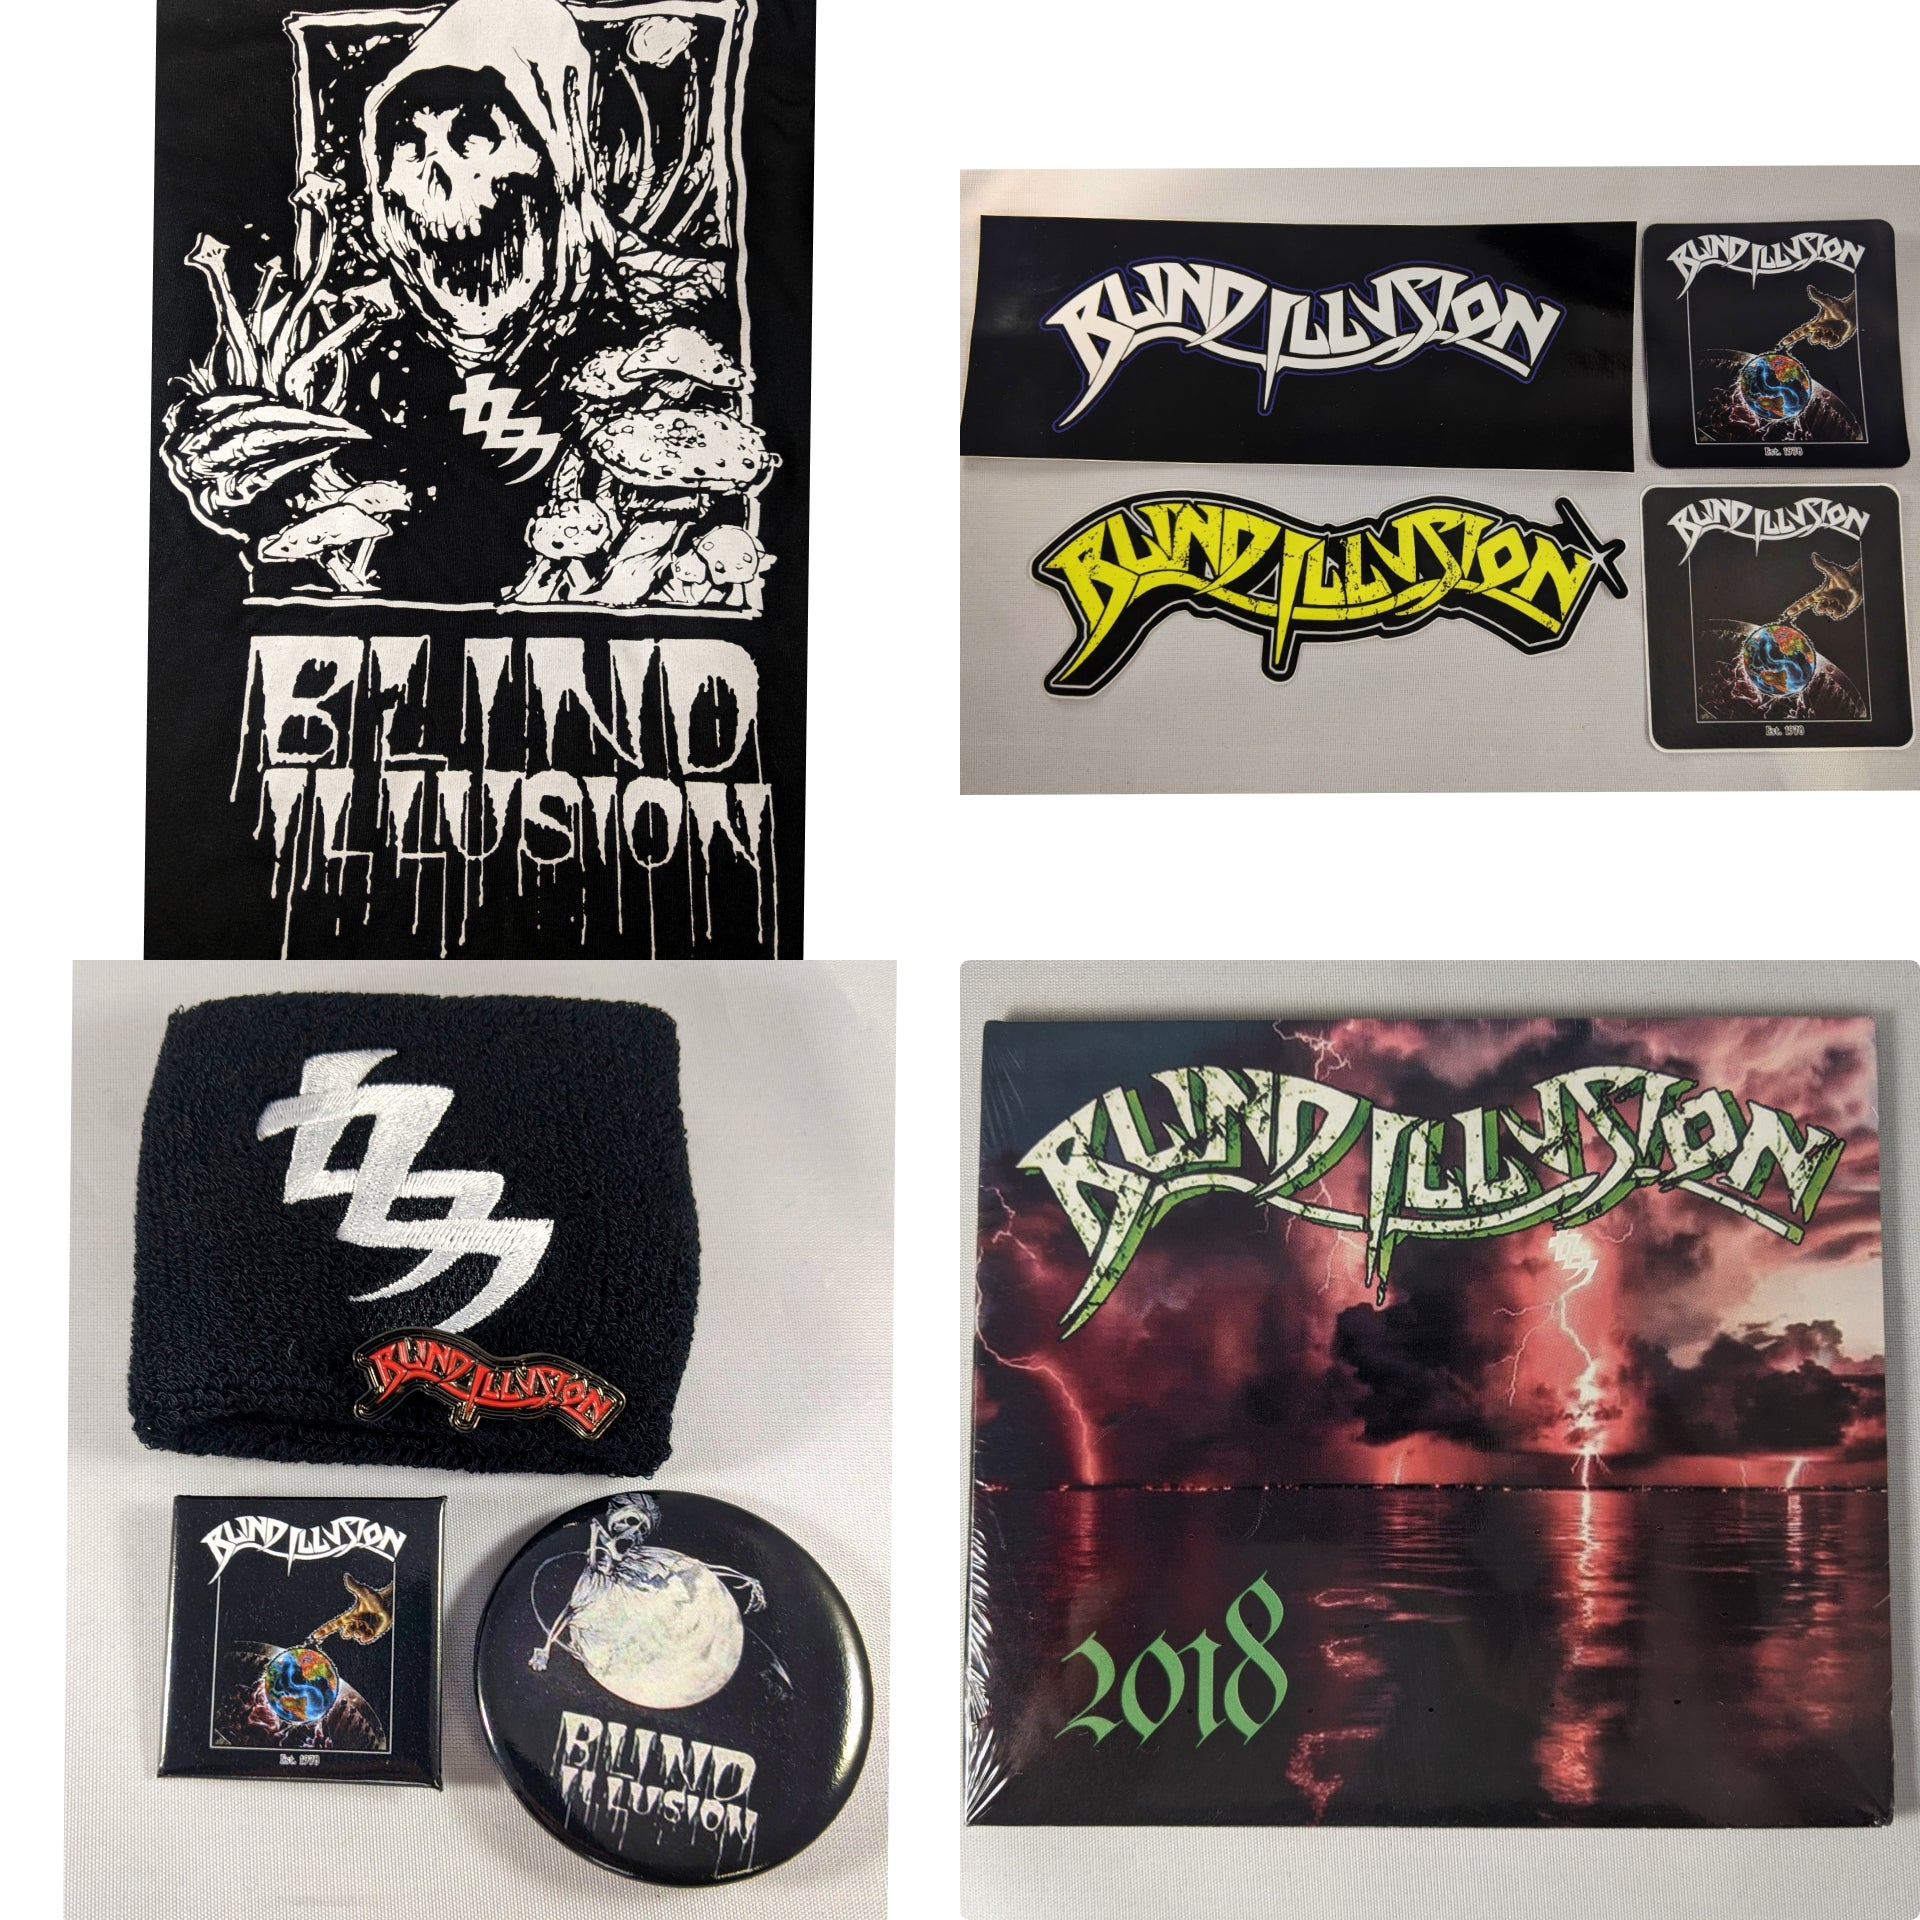 Blind Illusion Bundle with Cry for the Banshee Shirt + 2018 EP + sticker + Pin + wristband